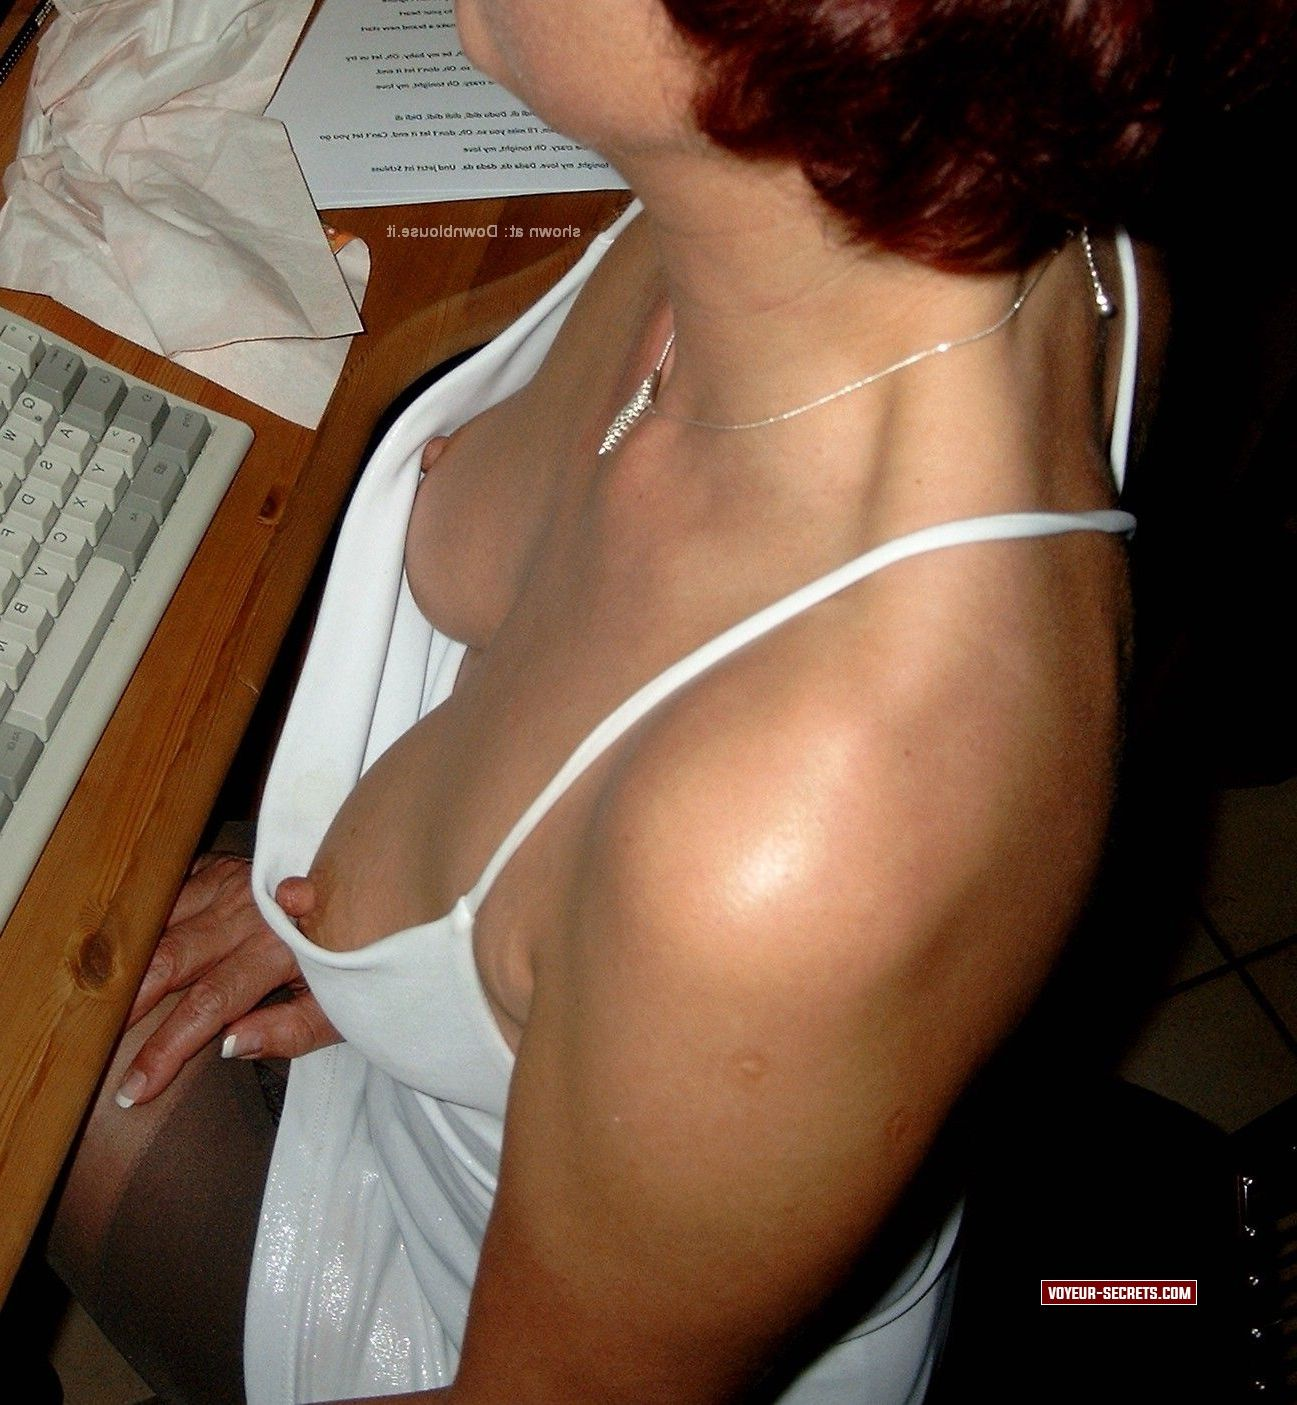 Nice bukkake private voyager tumblr nude move and